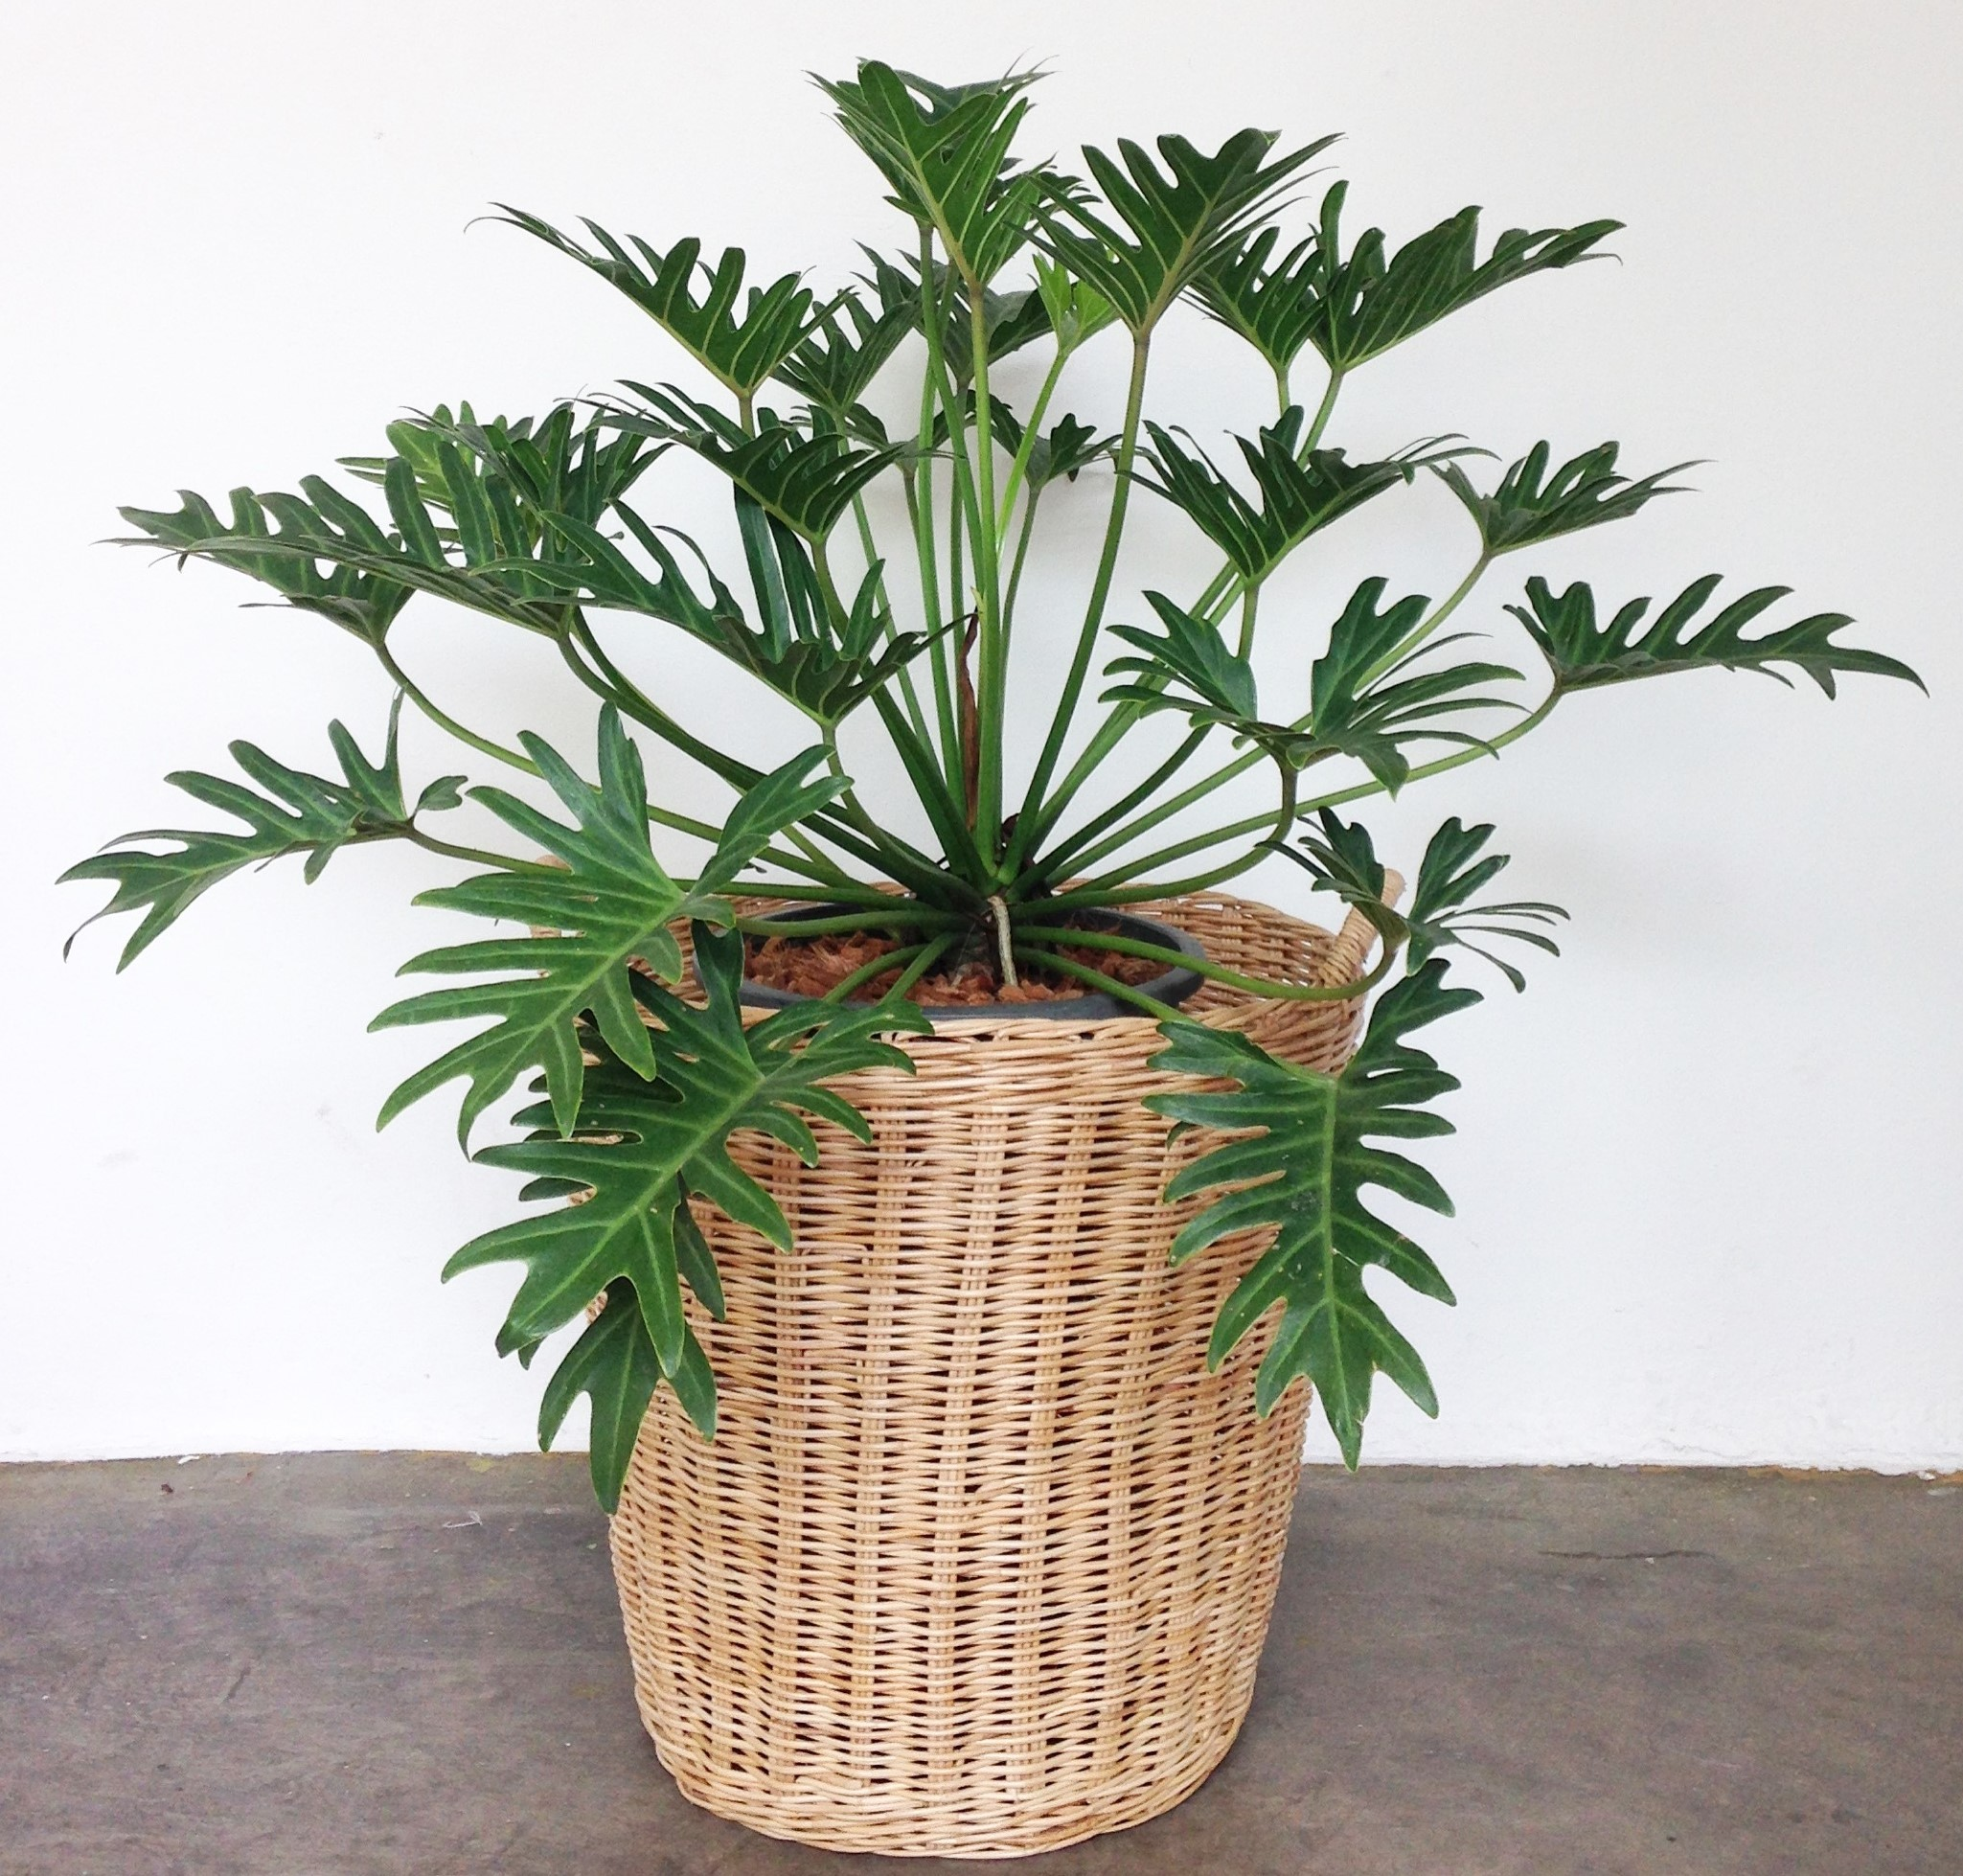 Philodendron 'Xanadu' (Philodendron x Winterbourn)